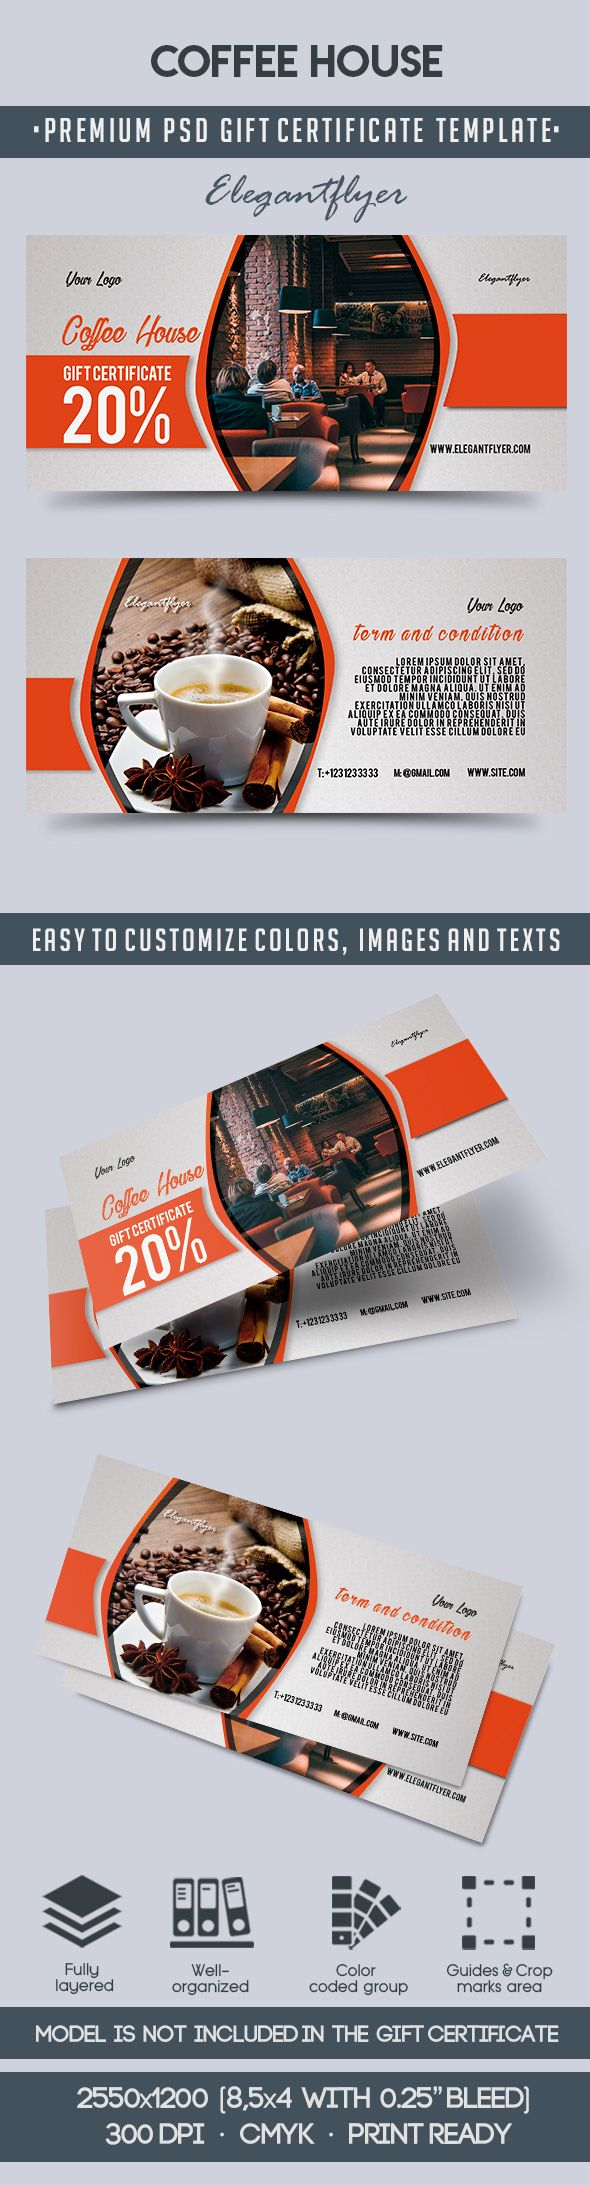 Coffee House – Premium Gift Certificate PSD Template